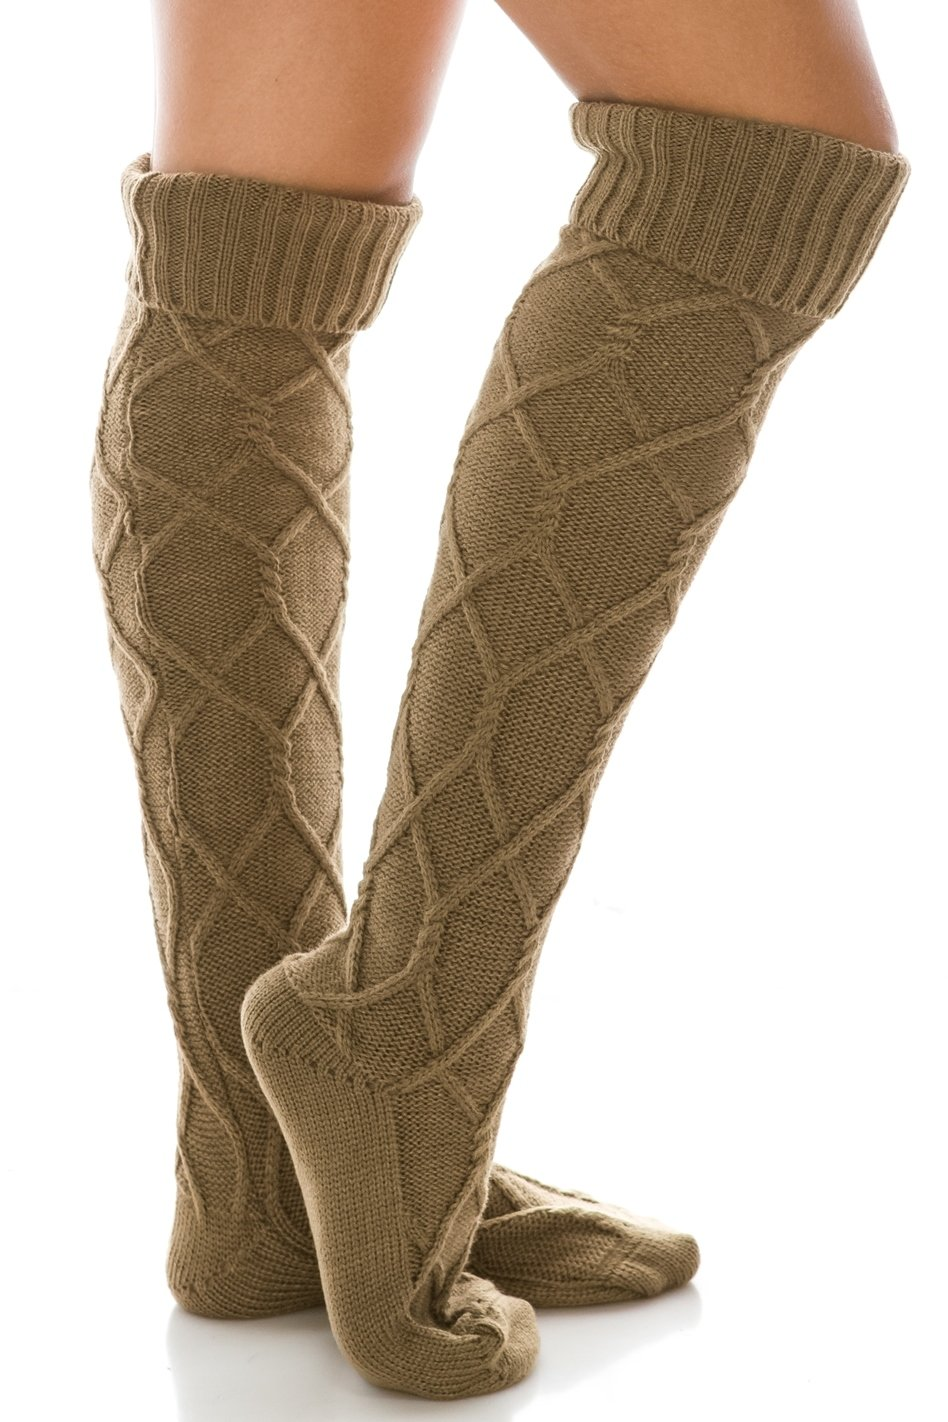 HatQuarters Diamond Knit Extra Long Boot Socks, Knee High Warm Solid Color Cuffed Leg Warmers (Camel Brown)